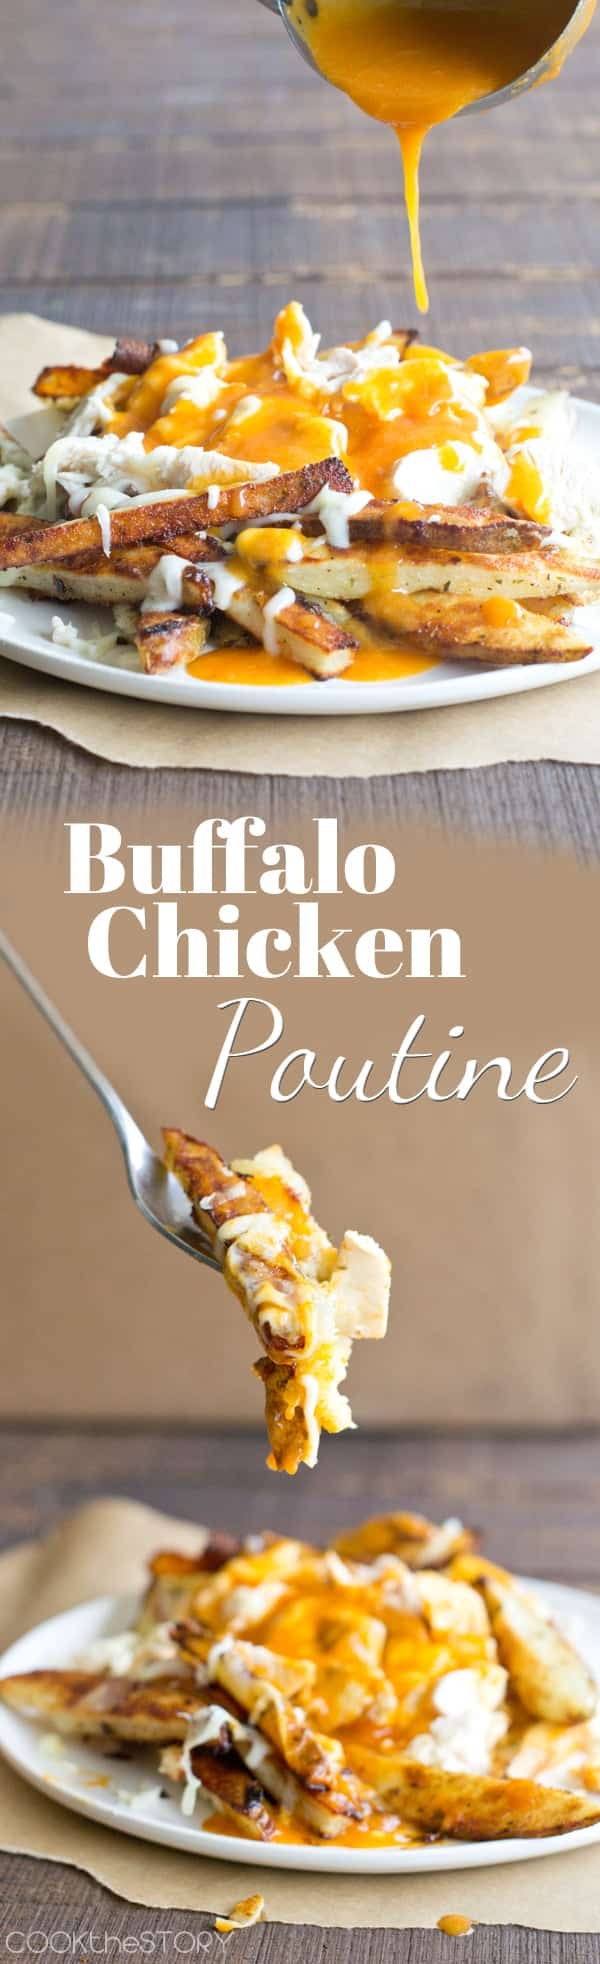 Buffalo Chicken Poutine: Ranch fries with mozzarella and a spicy wing sauce, butter and beer gravy